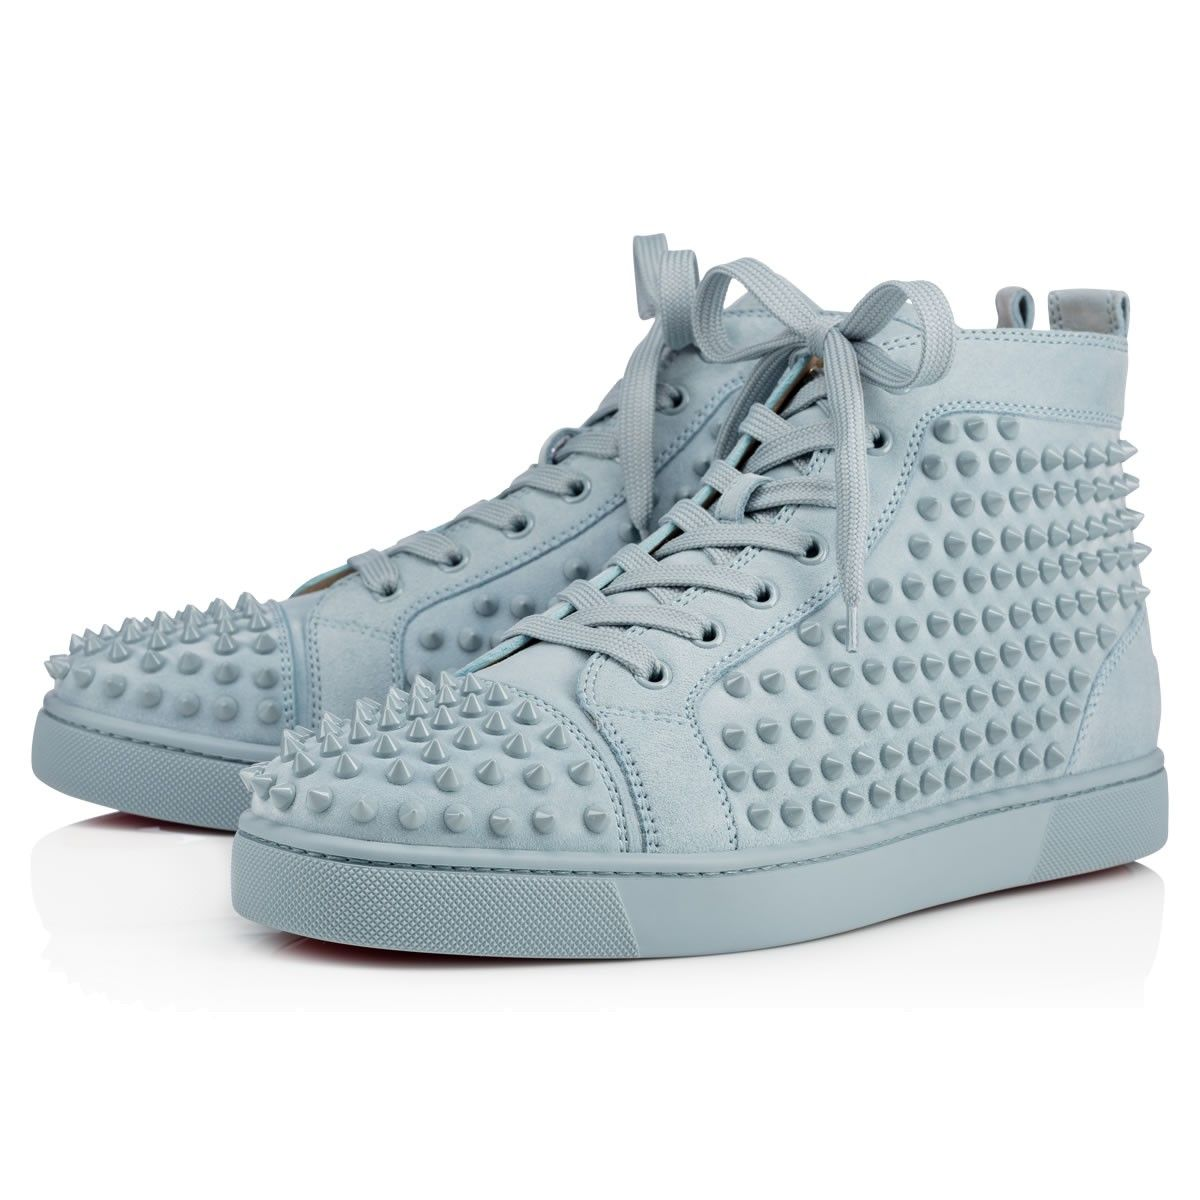 0aef310f662f Shoes - Louis Spikes Men s Flat - Christian Louboutin